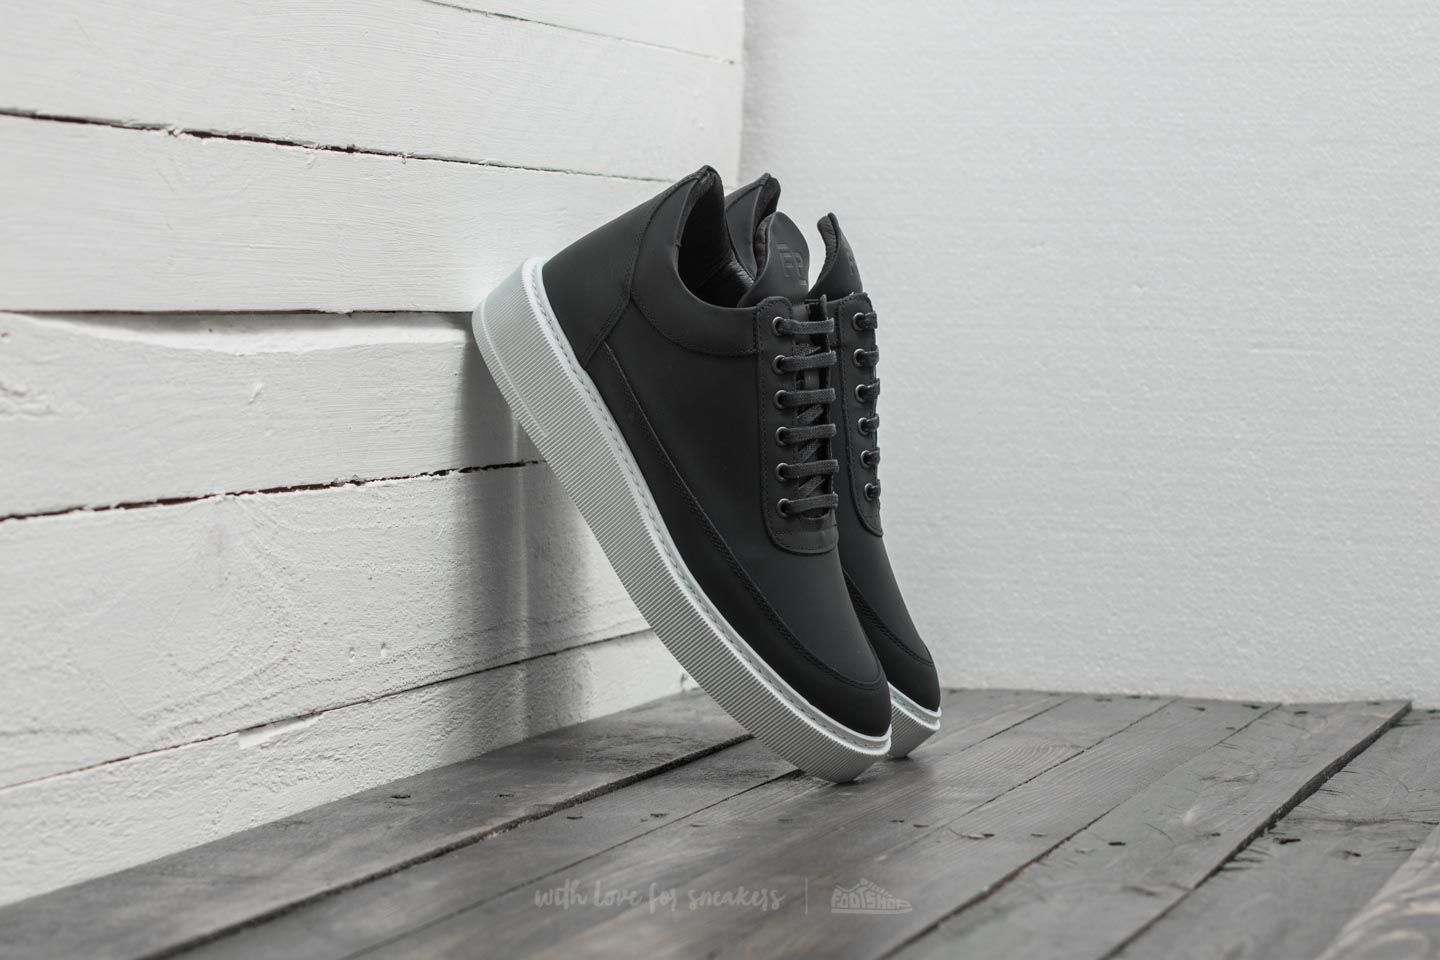 7944f10273fc7 Luxusní pánské sneakers Filling Pieces Low Top Dress Cup ...